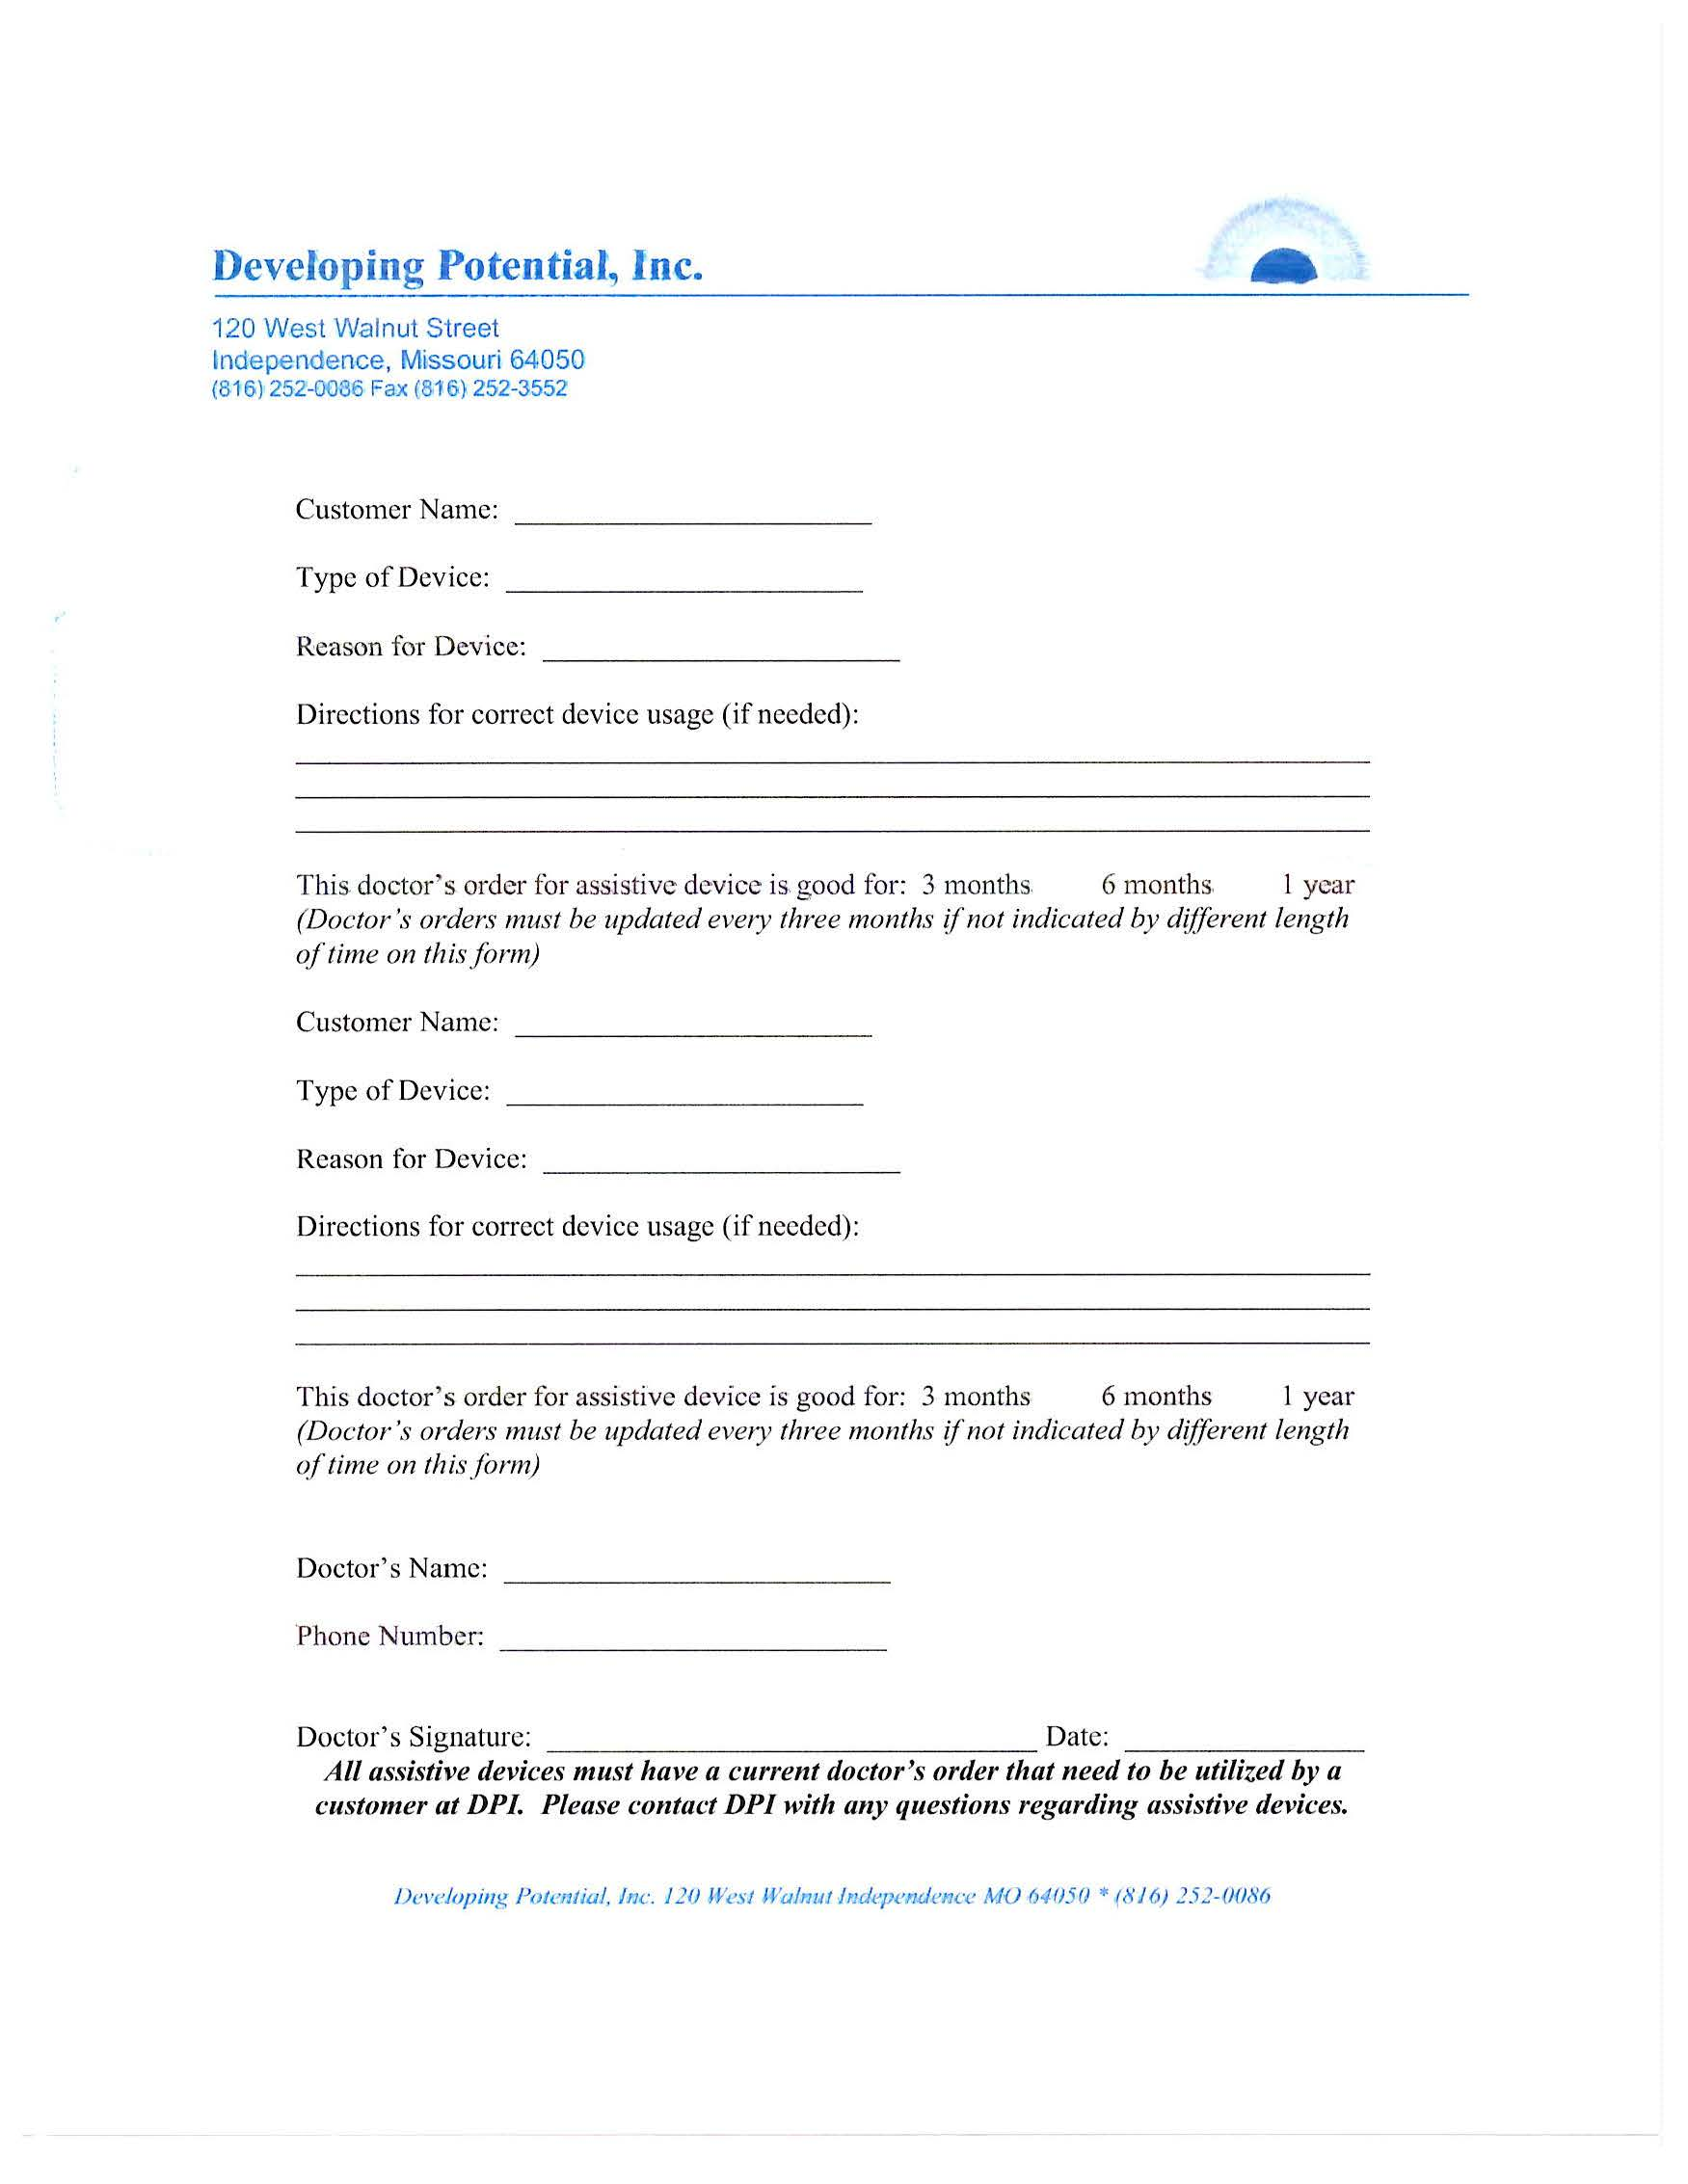 DOWNLOAD DPI Assistive Device Form